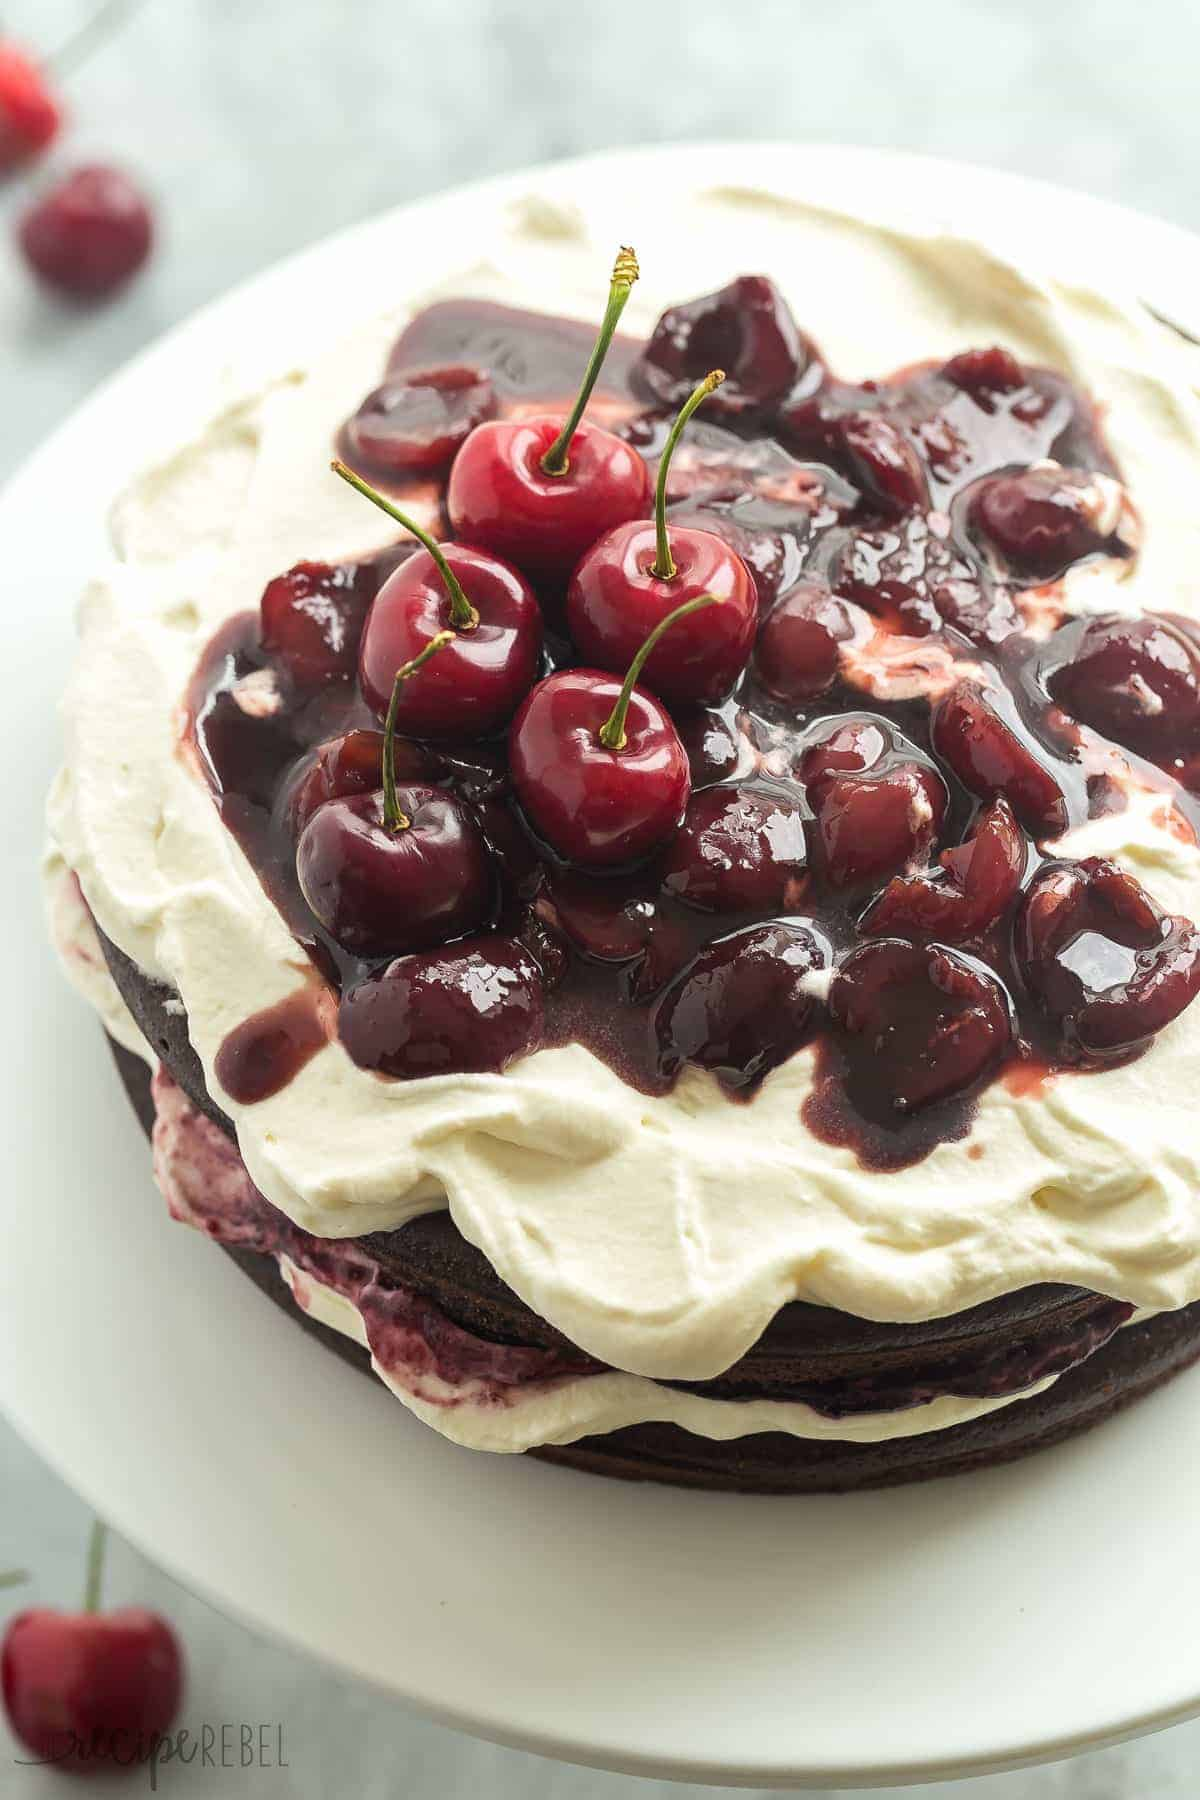 gluten free black forest cake whole with whipped cream and fresh dark cherry sauce